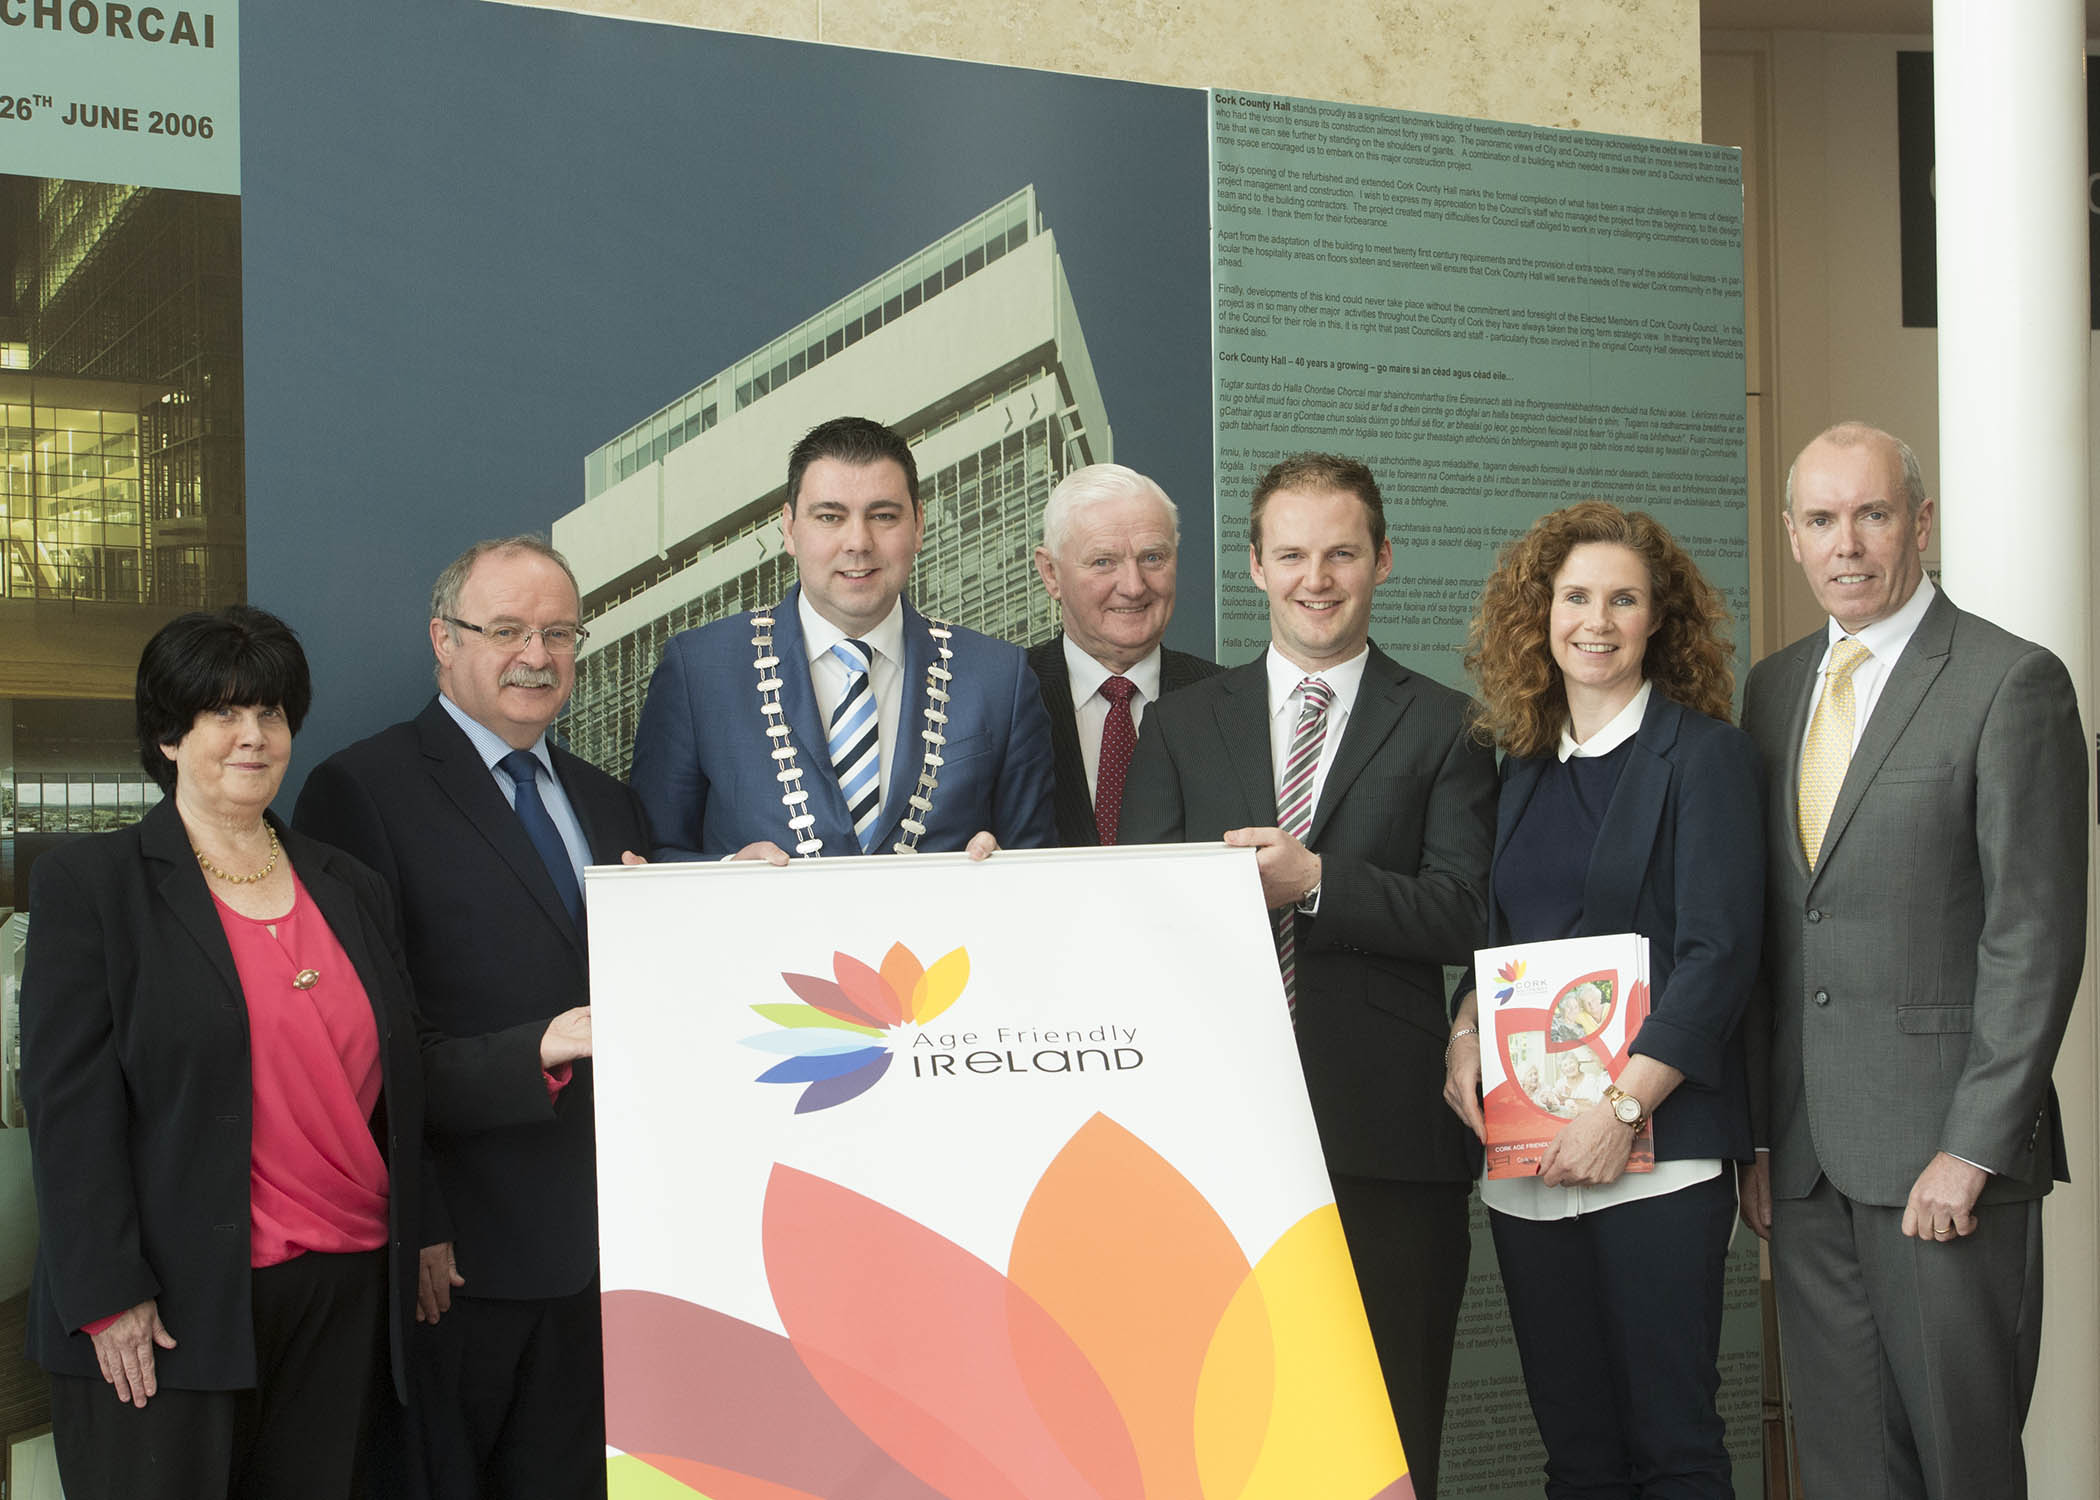 County Cork Set to Become Age Friendly – Five Year Strategy Launched